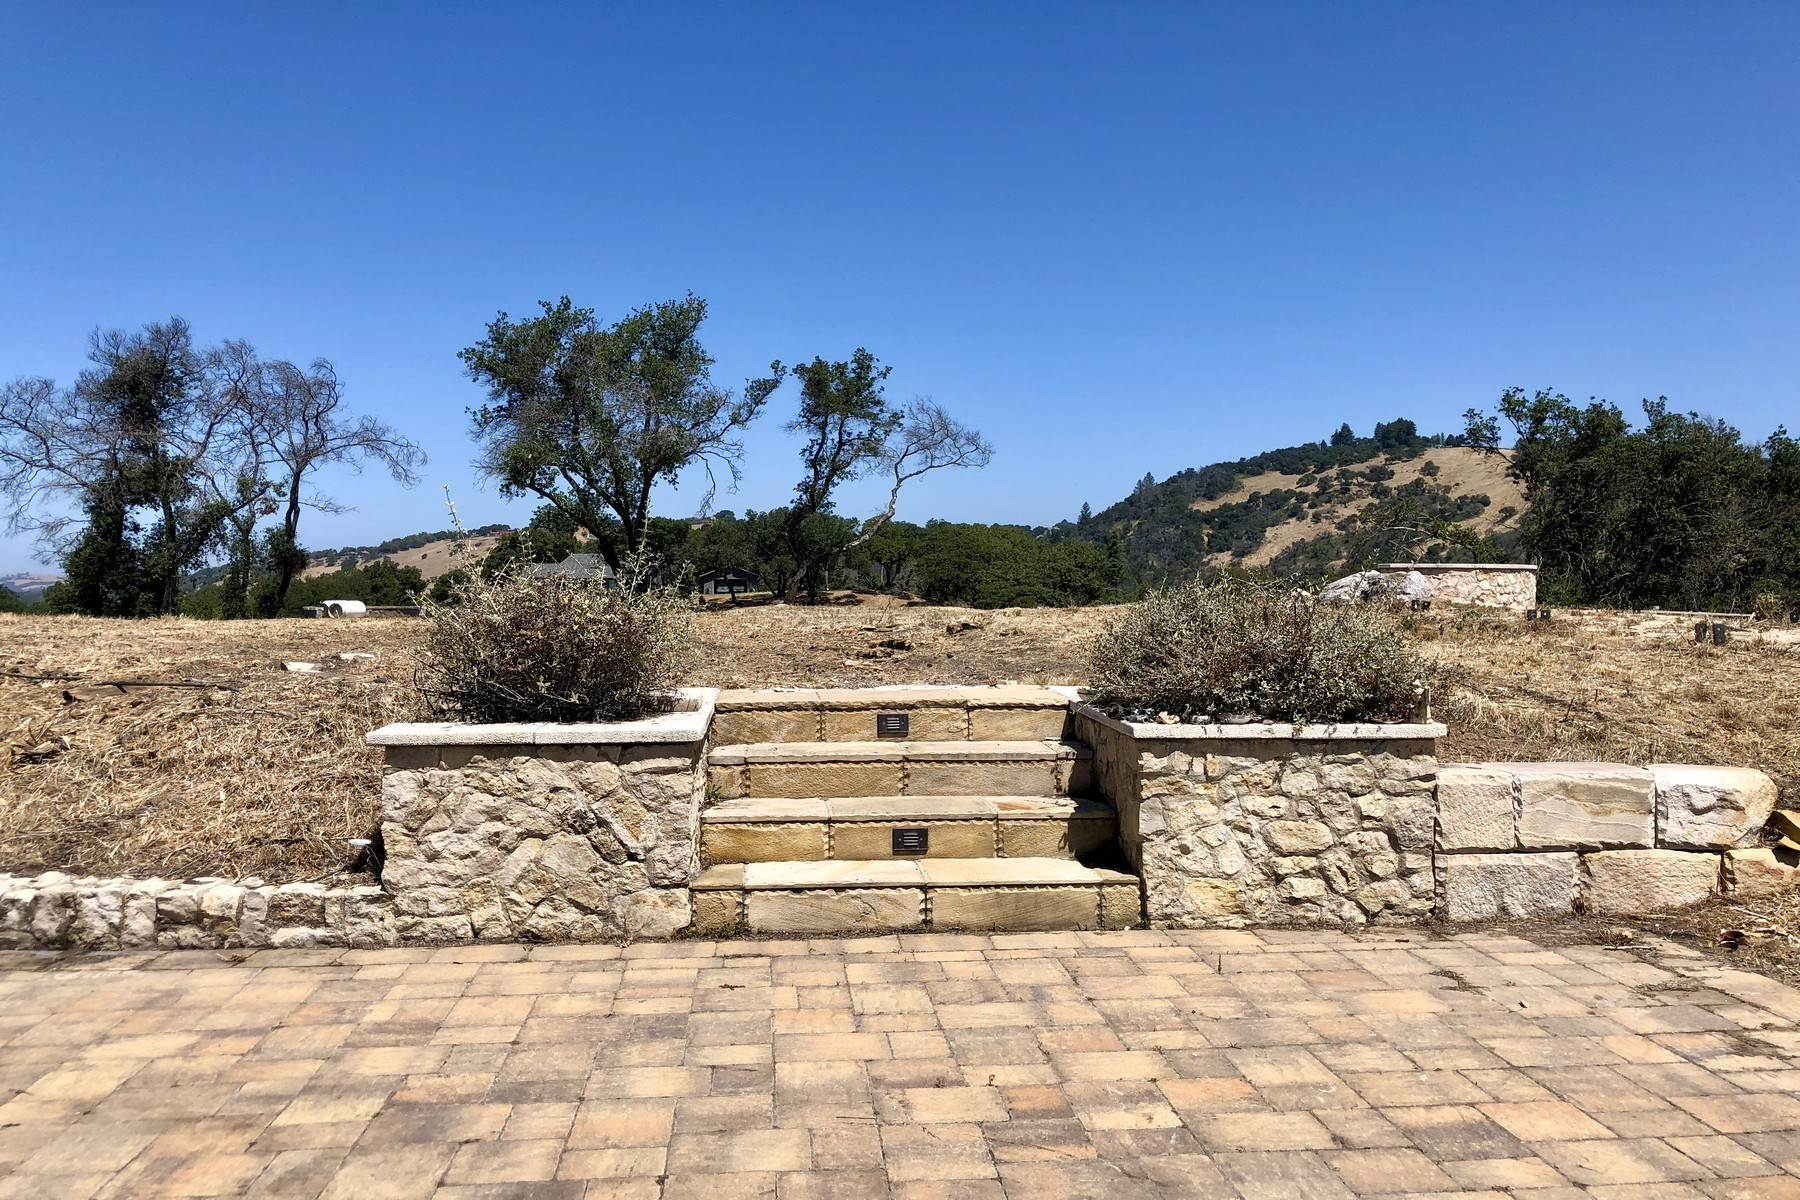 Property for Sale at Mark West Meadows Estate Parcel 5391 Blue Ridge Trail Santa Rosa, California 95401 United States